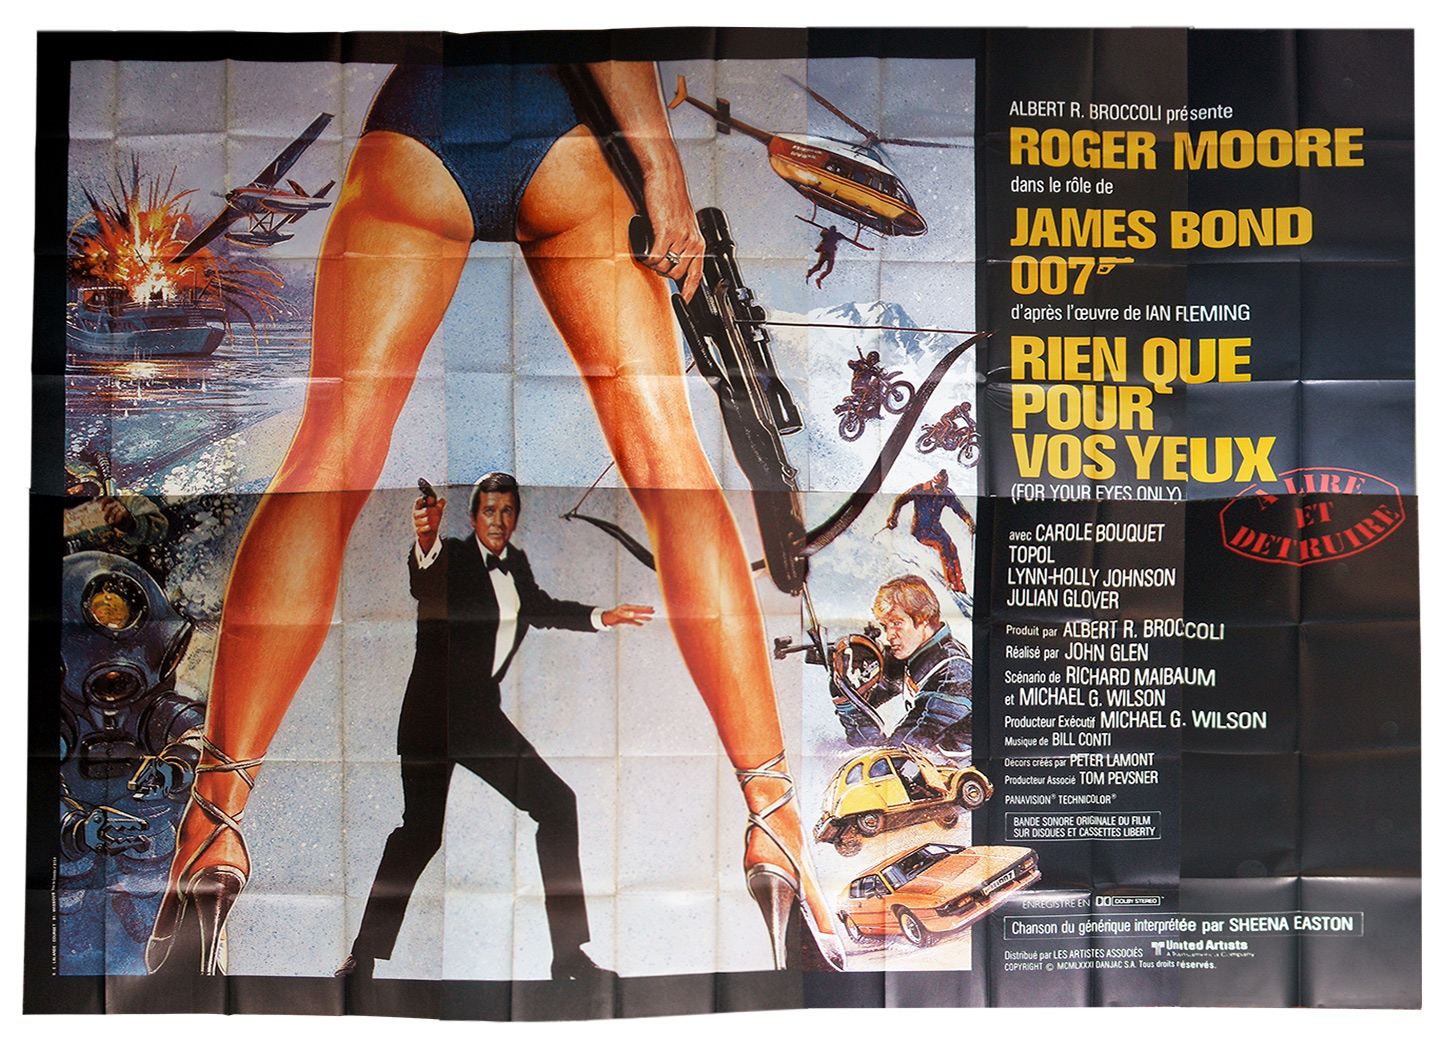 affiche du film: Rien que pour vos yeux,for your eyes only, affiche originale du film de John Glen, acteurs Roger Moore, Carole Bouquet, sur www.wanted-rare-books.com/james-bond-007-rien-que-pour-vos-yeux-for-your-eyes-only-affiche-film.htm -  Librairie on-line Marseille, http://www.wanted-rare-books.com/